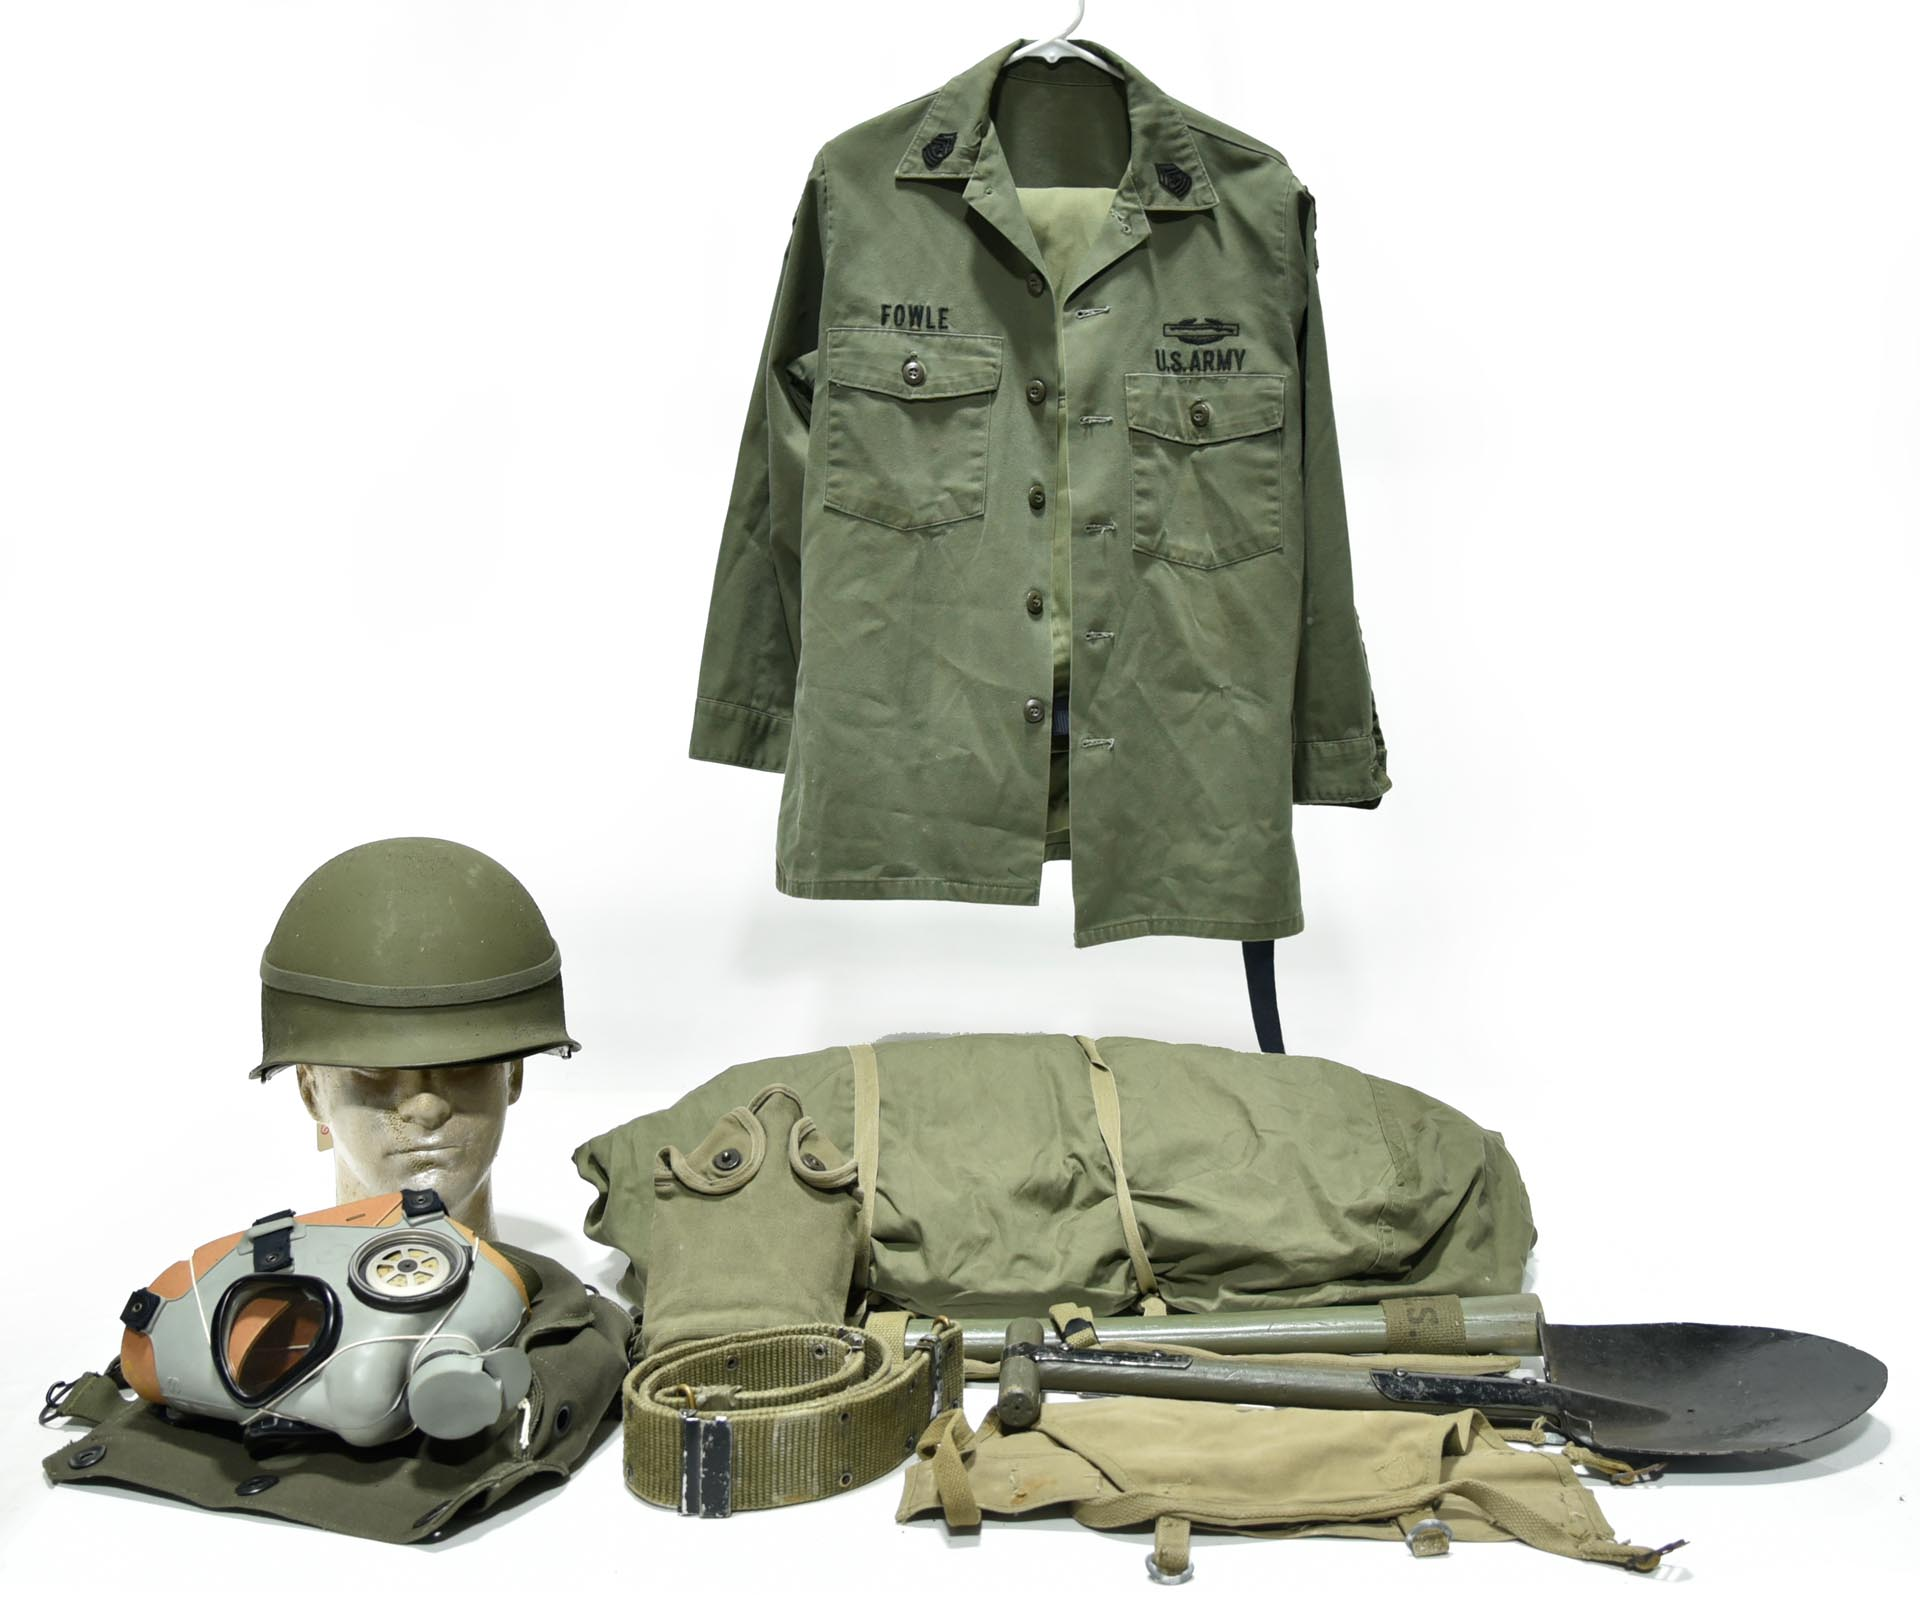 Collection Lot of Cold War U.S. Army Uniform, Helmet and Accessories